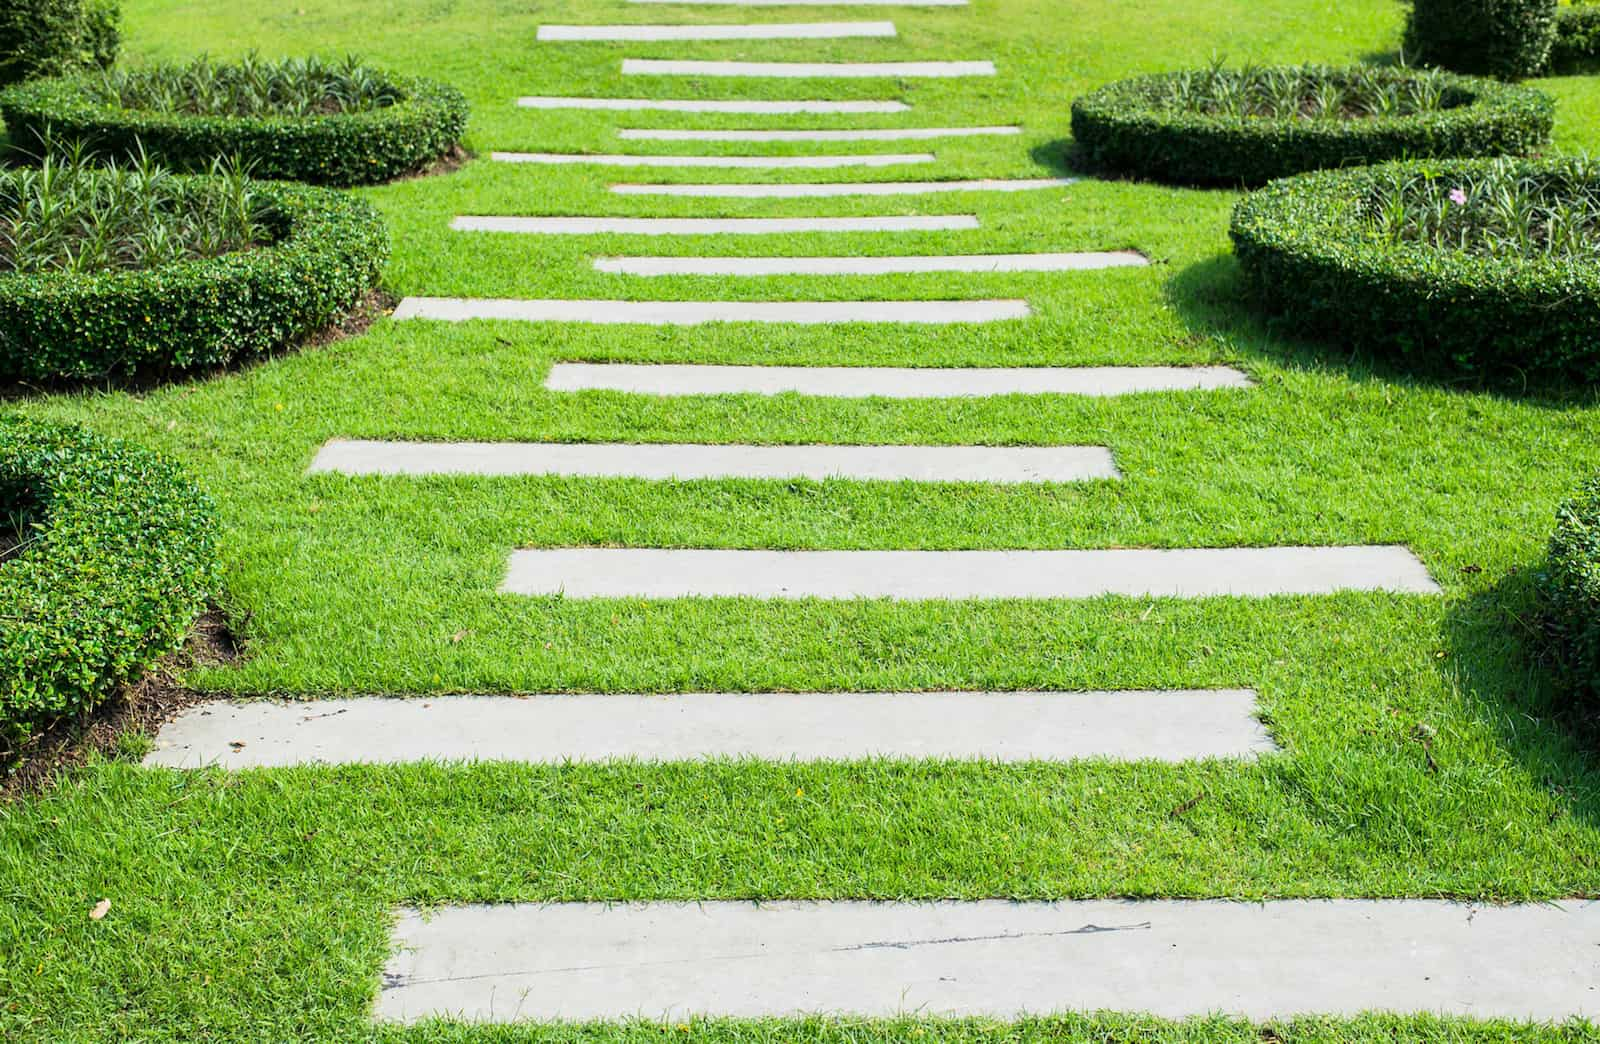 Garden Path Ideas | Mulch | Gravel | Wooden | Crazy Paving on Patio And Path Ideas  id=92697